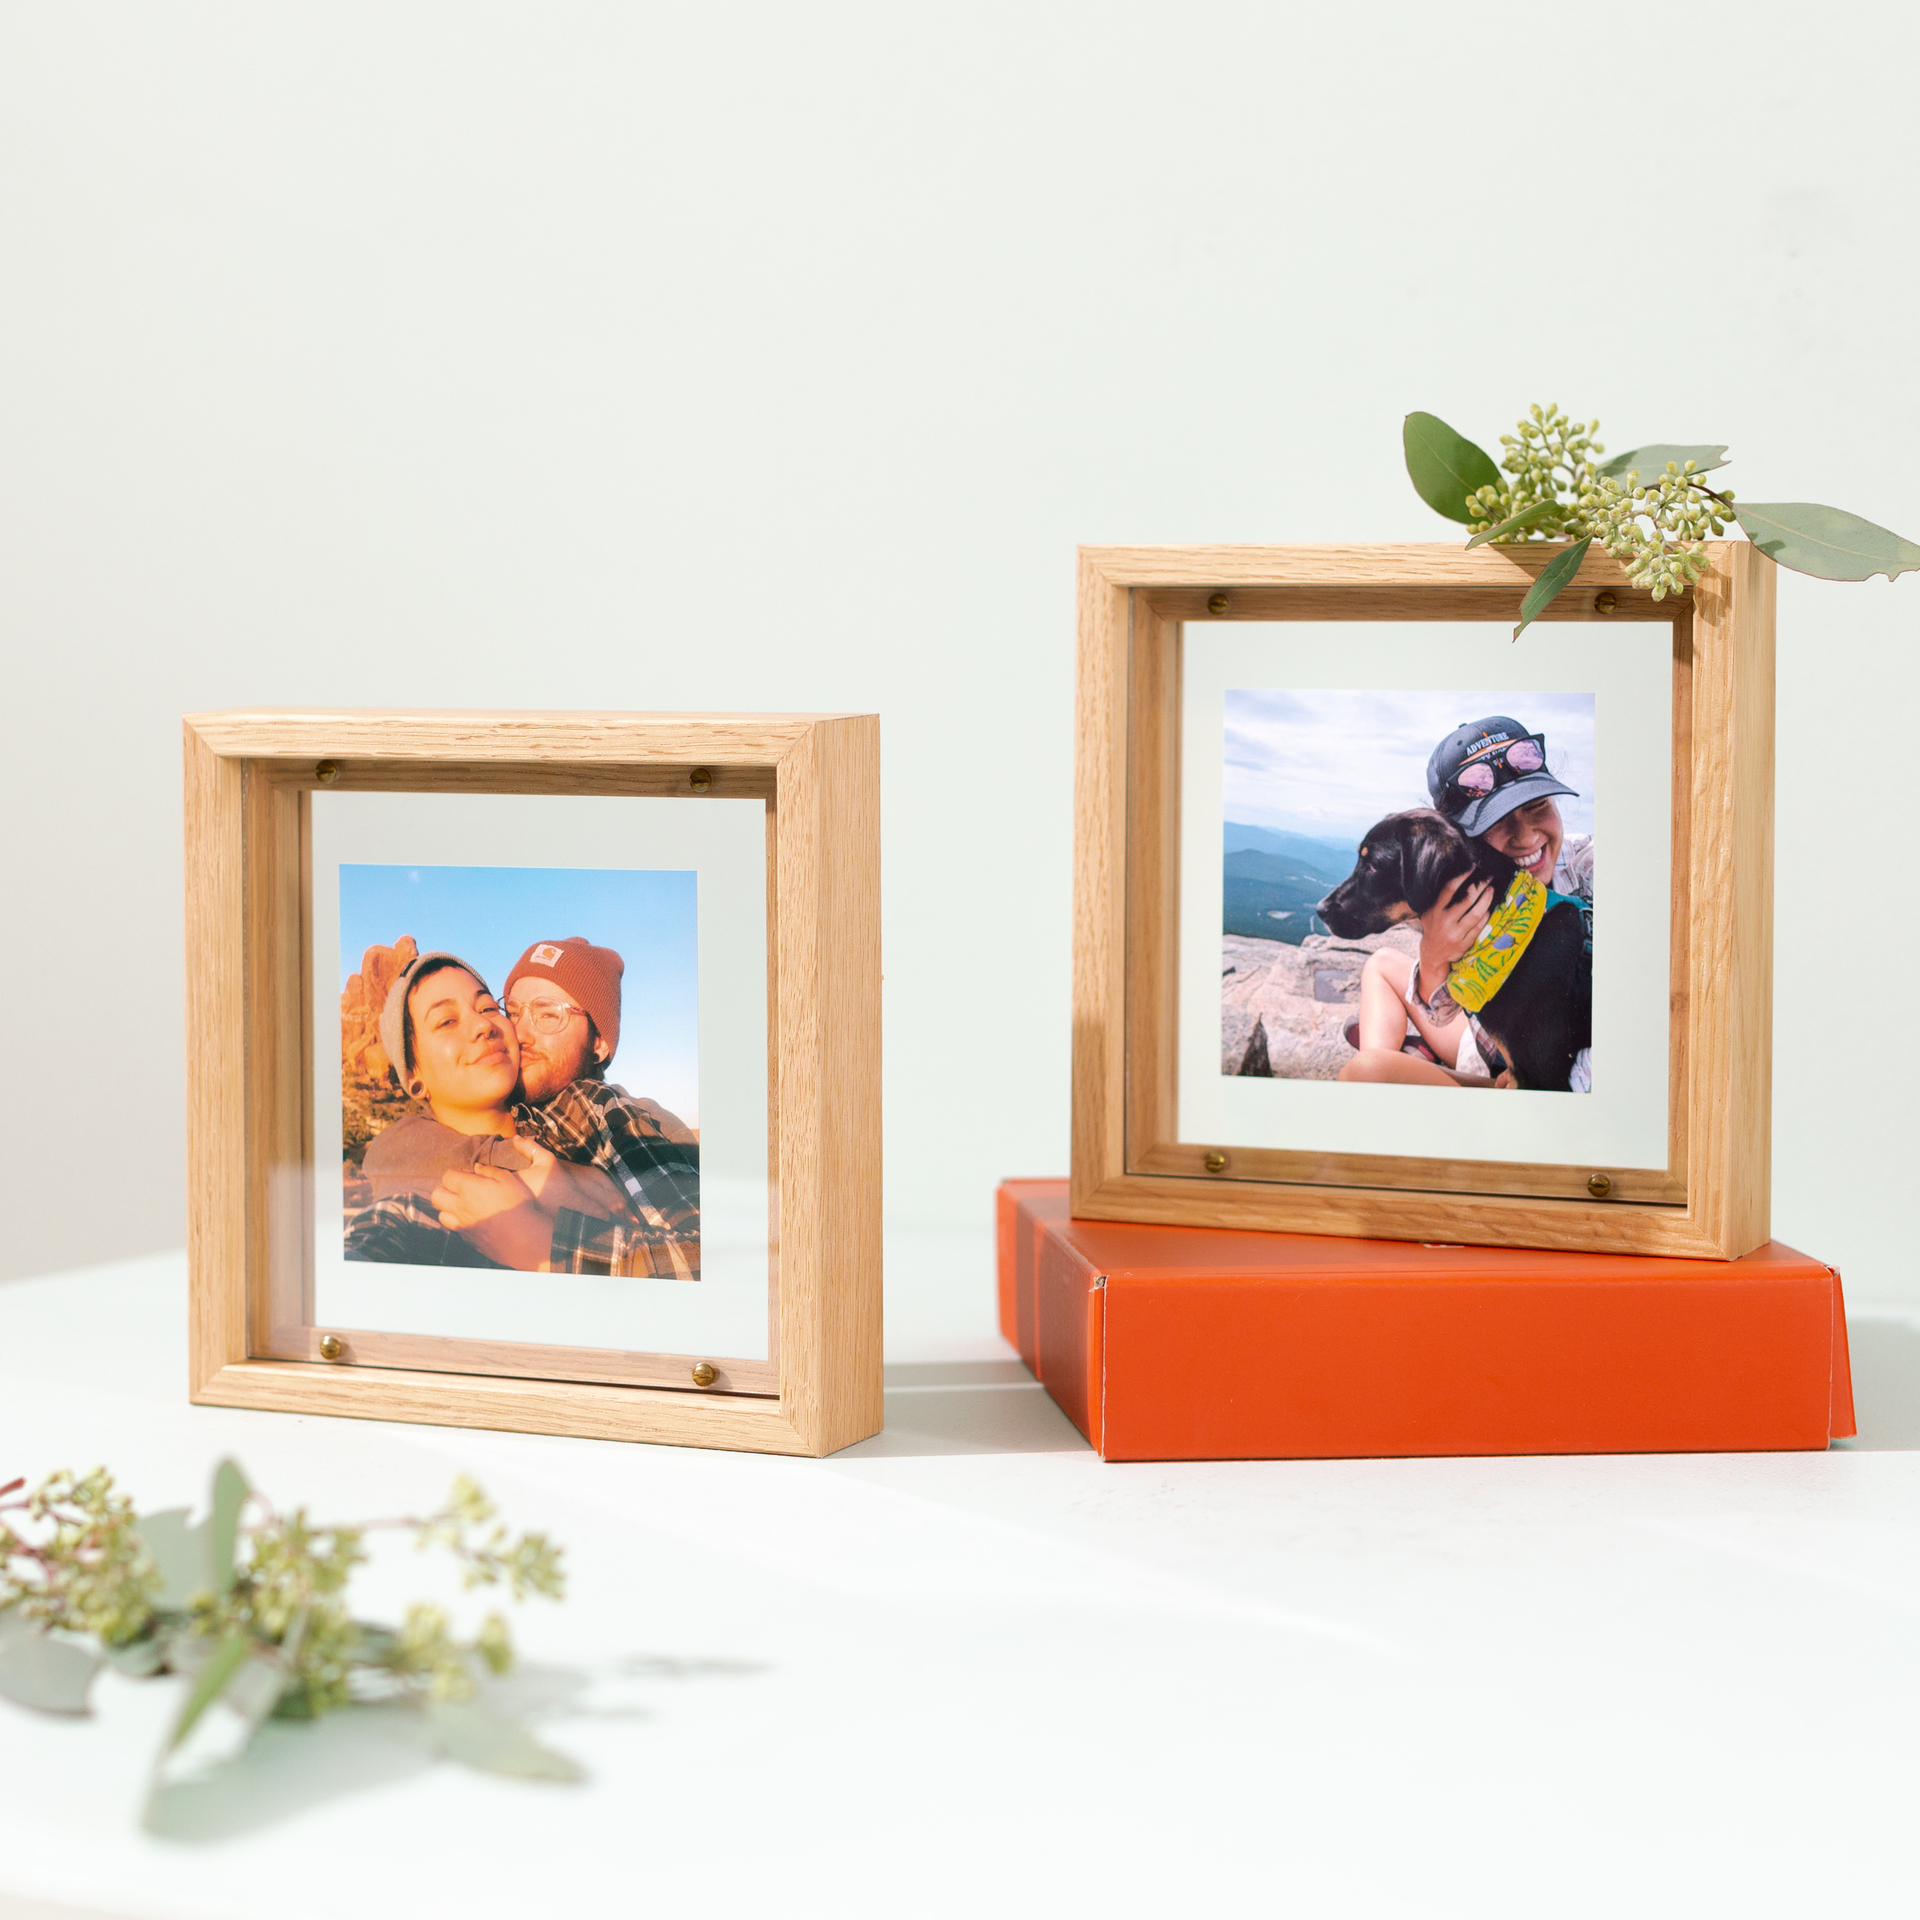 photo frame for dad's gift